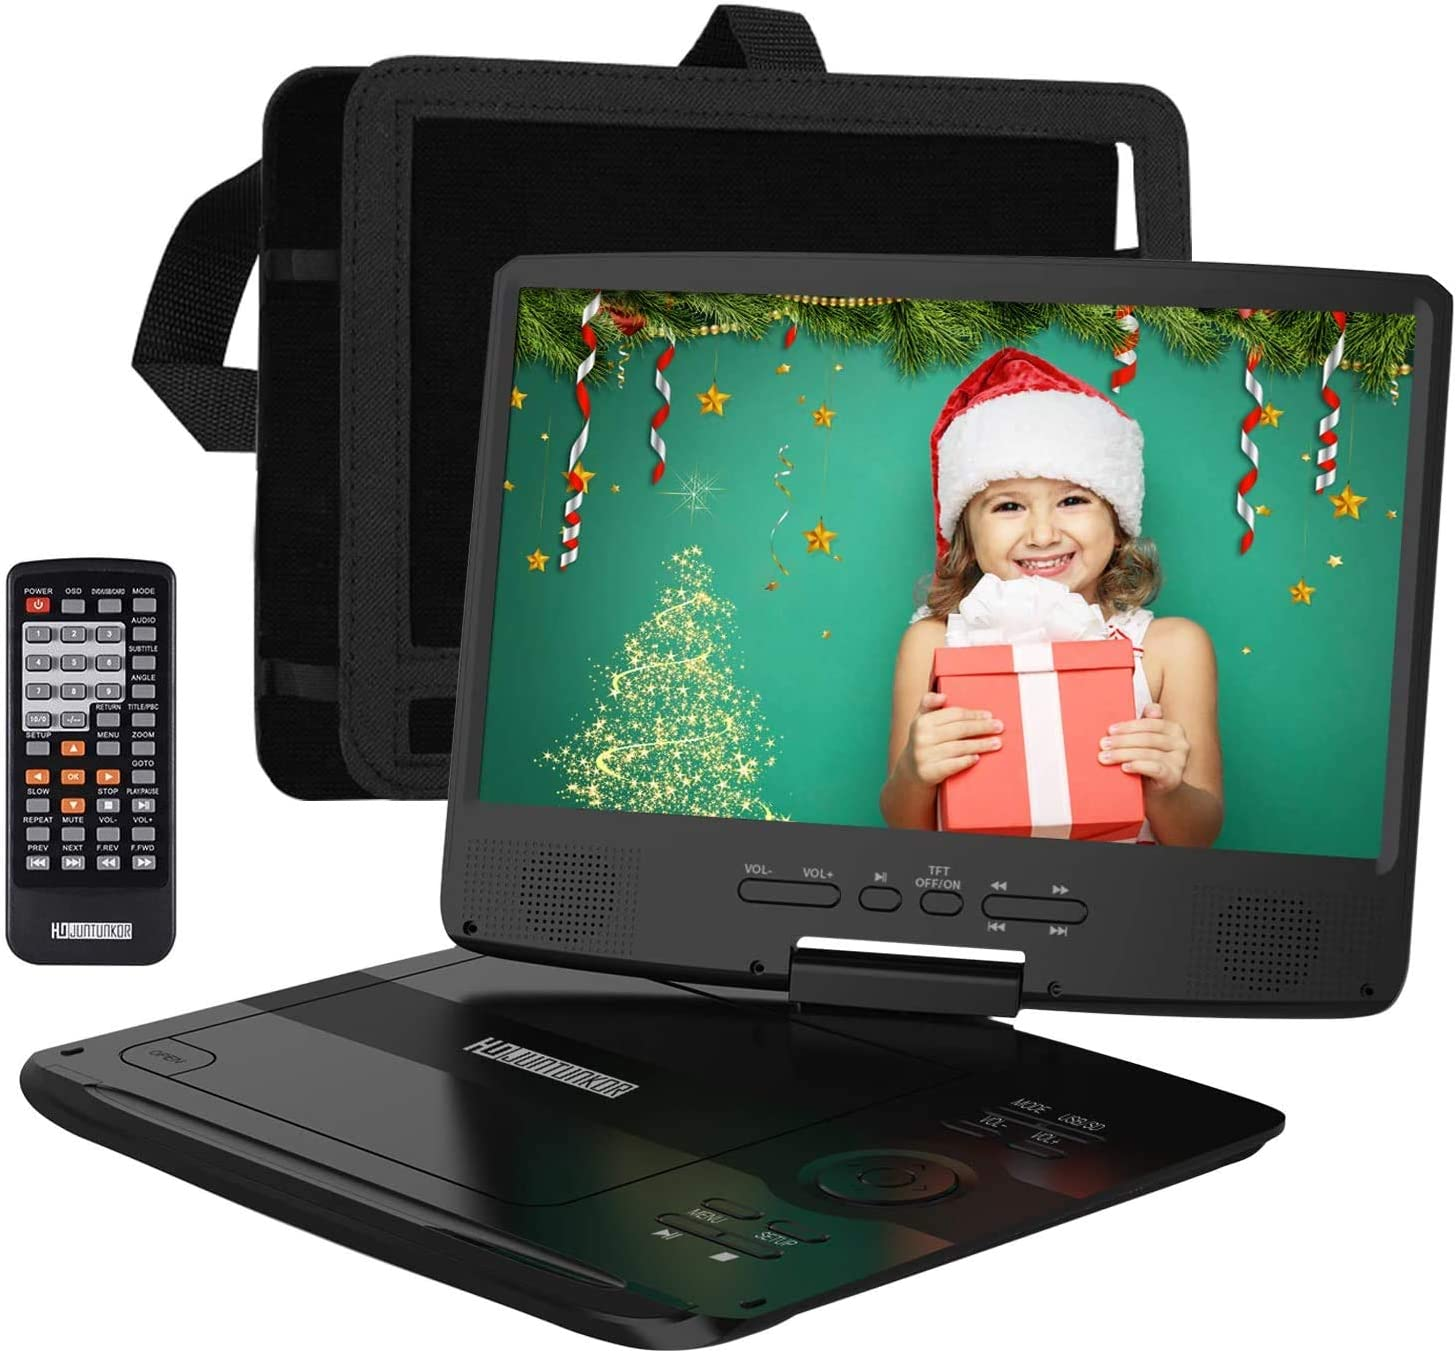 "HDJUNTUNKOR Portable DVD Player with 10.1"" HD Swivel Display Screen"